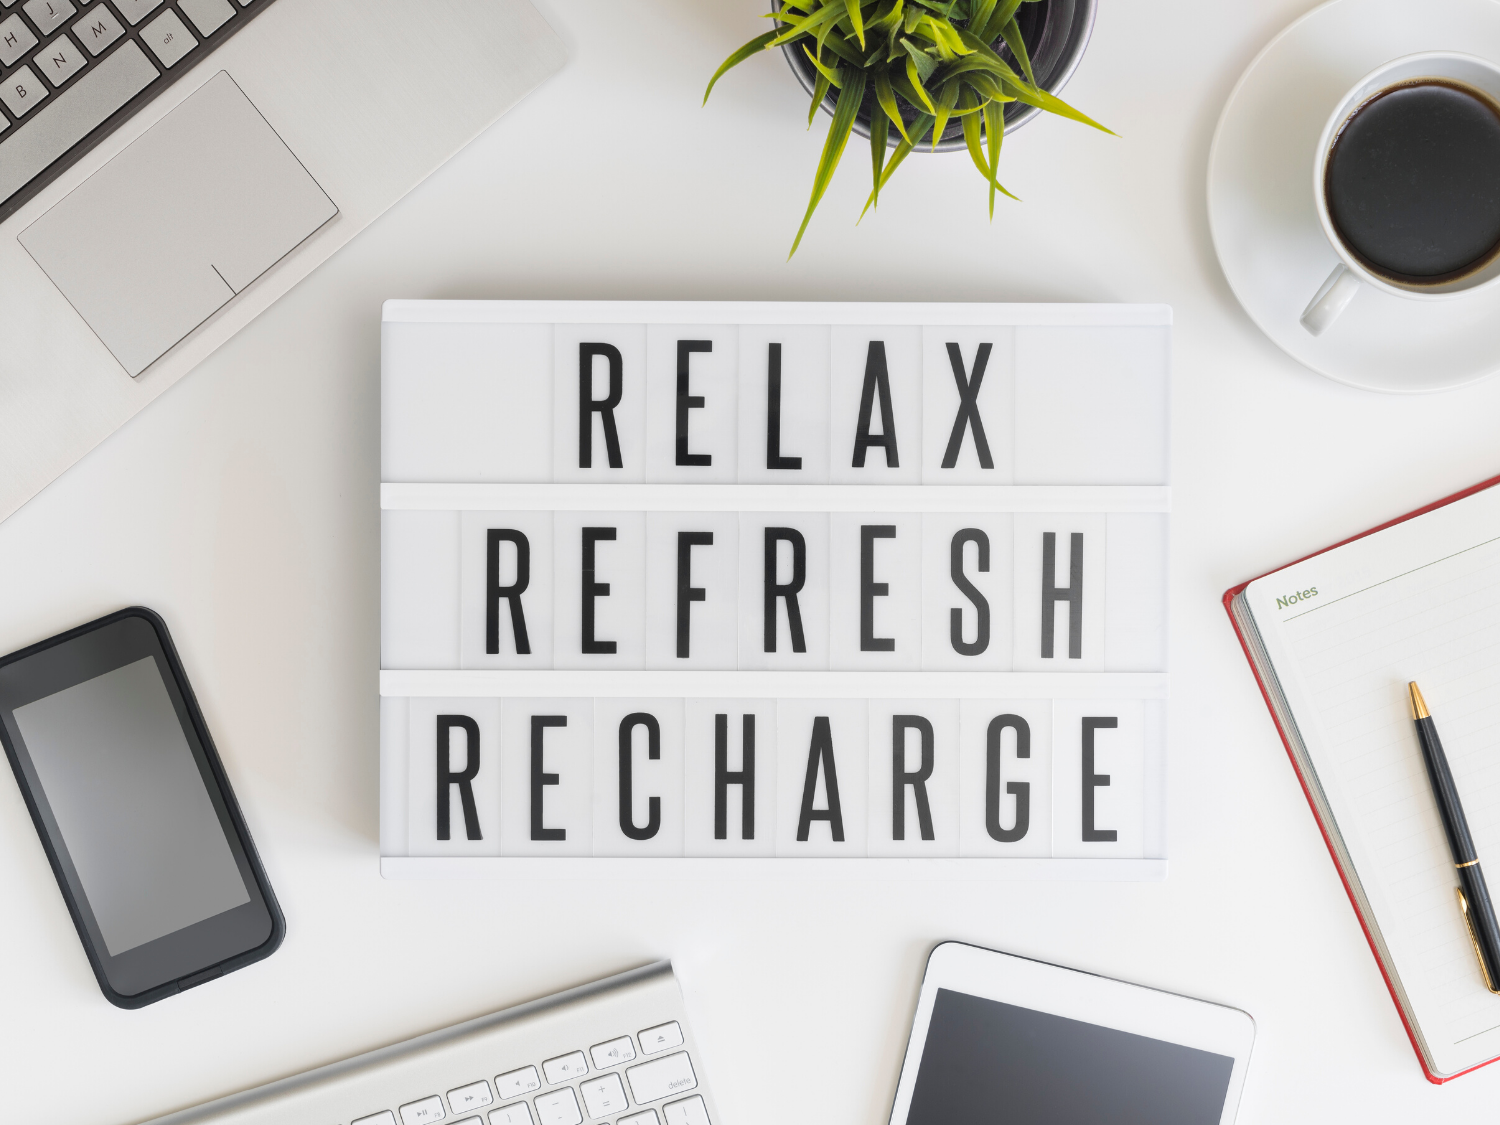 What are the best ways to relax? 6 tips for a relaxing life